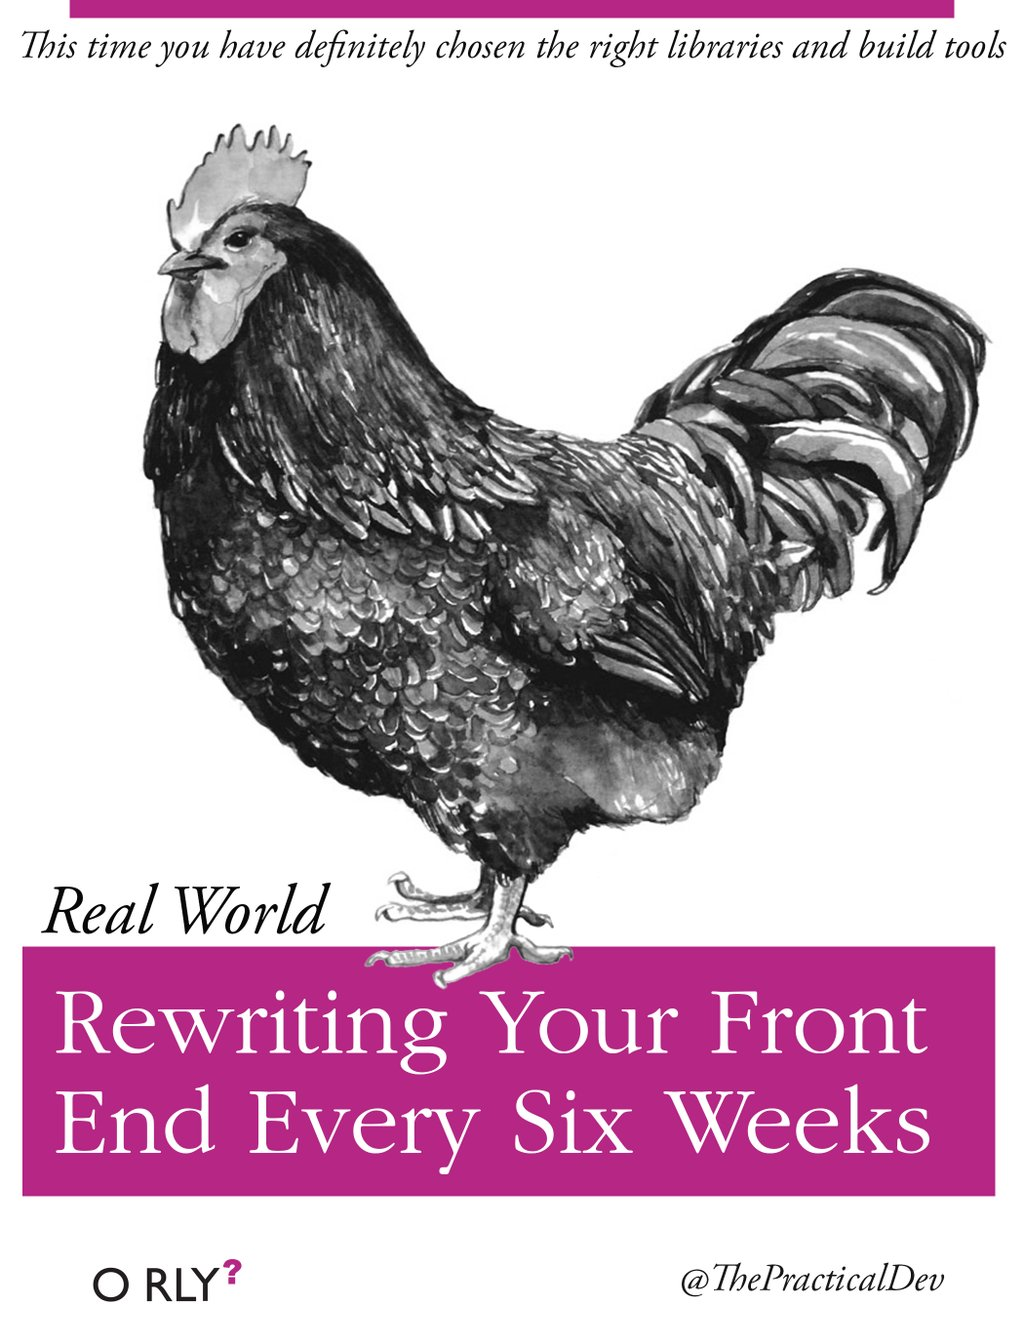 Satirical book cover: Rewriting Your Front End Every Six Weeks by @ThePracticalDev